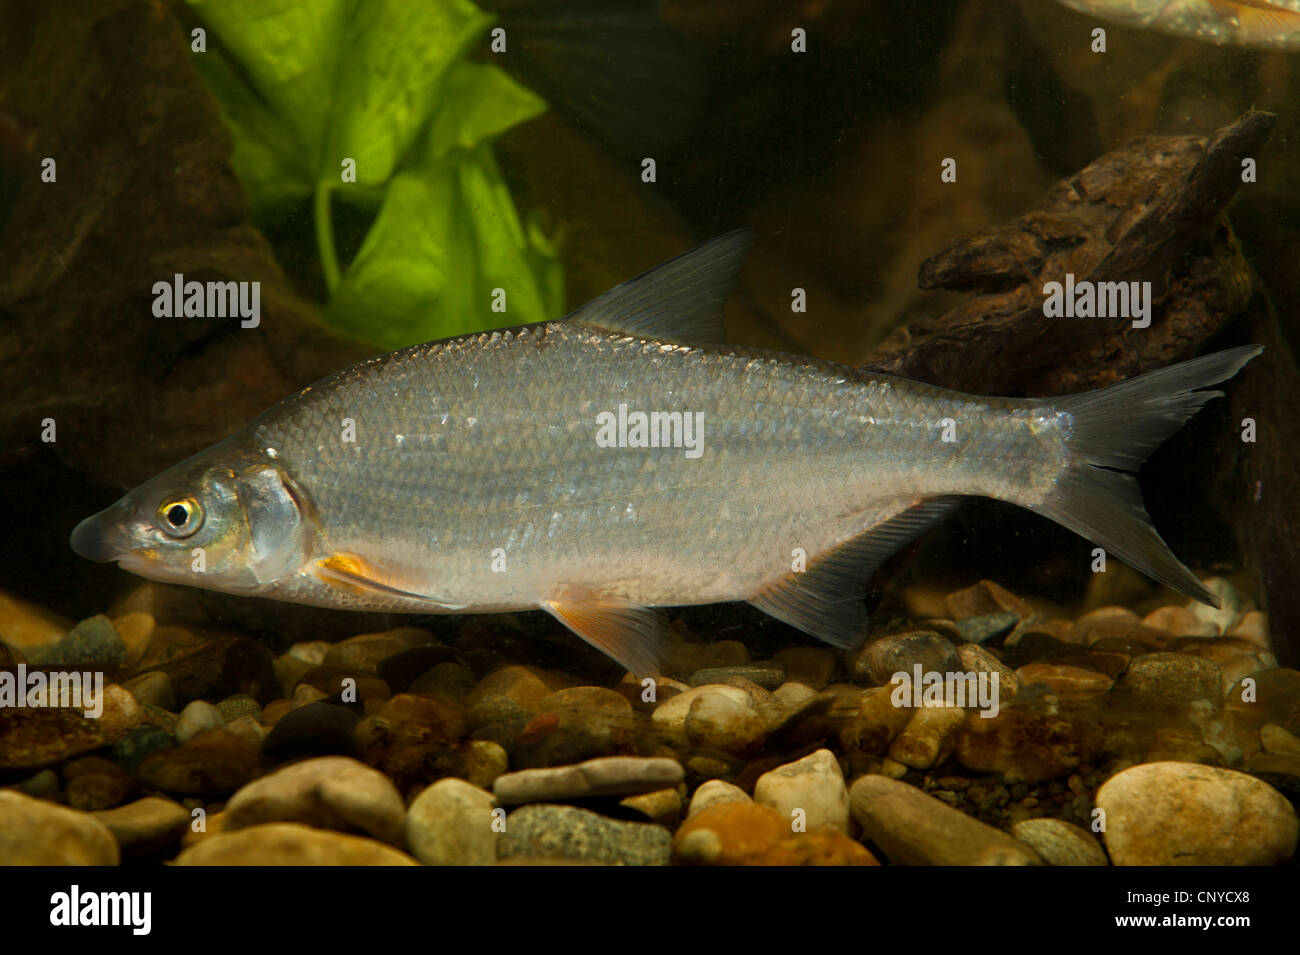 East European bream, zaehrte, Baltic vimba (Vimba vimba), at the pebble ground of a water - Stock Image